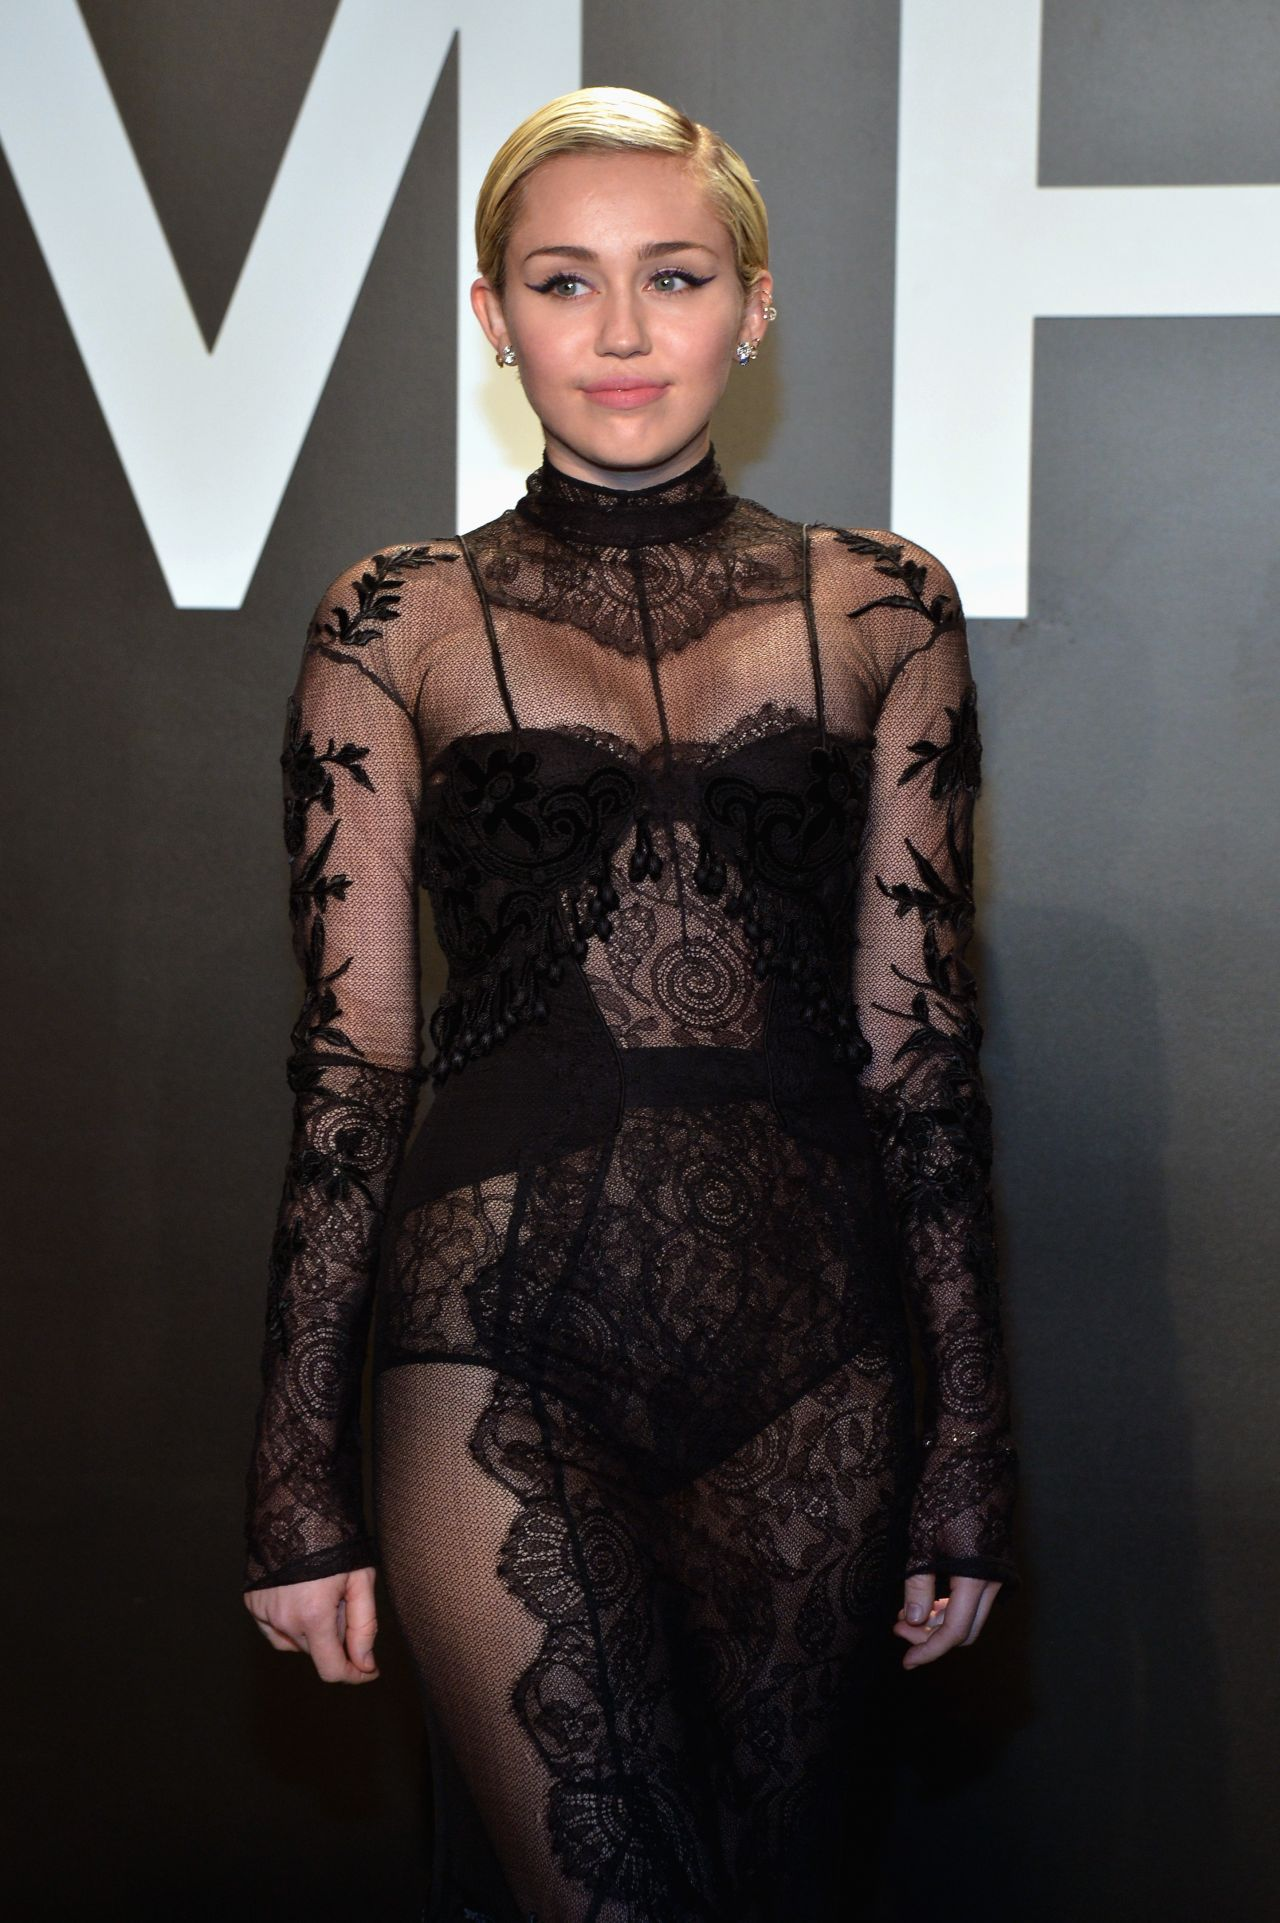 Miley Cyrus – Tom Ford Autumn/Winter 2015 Womenswear Collection Presentation in Los Angeles